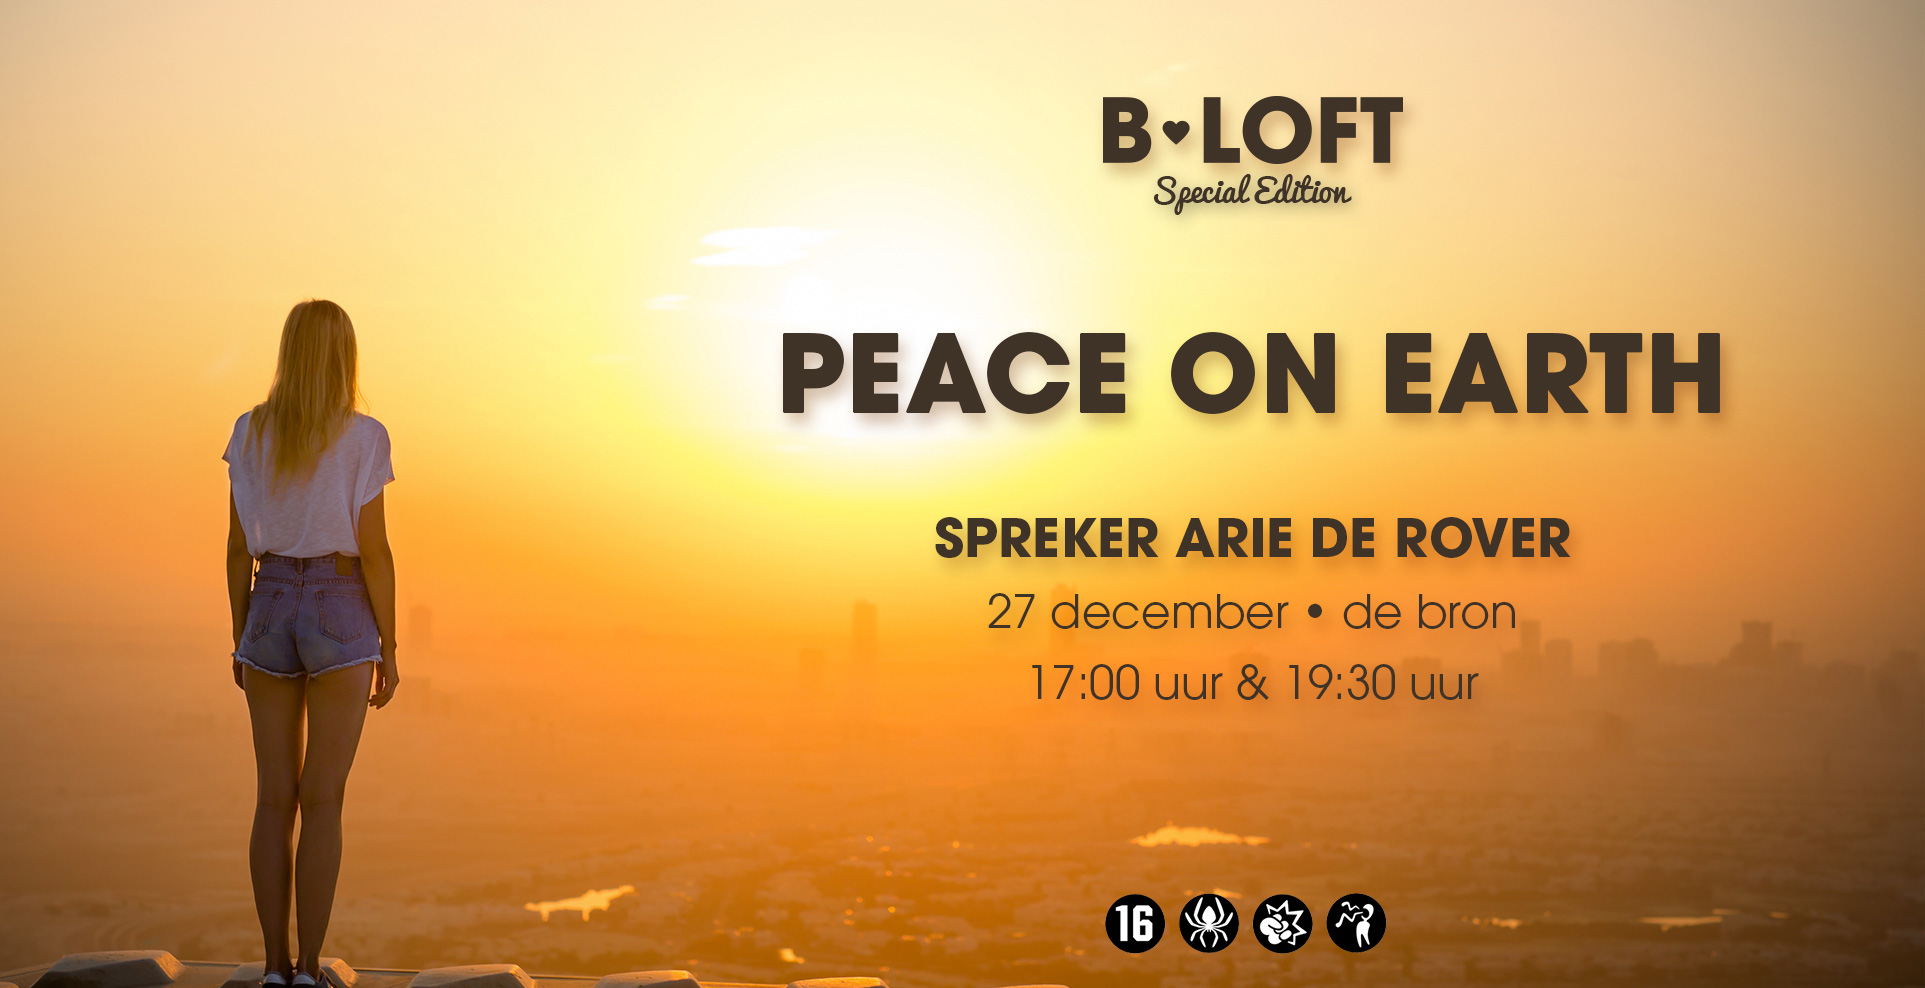 B.LOFT 27-12-2015 Peace on Earth